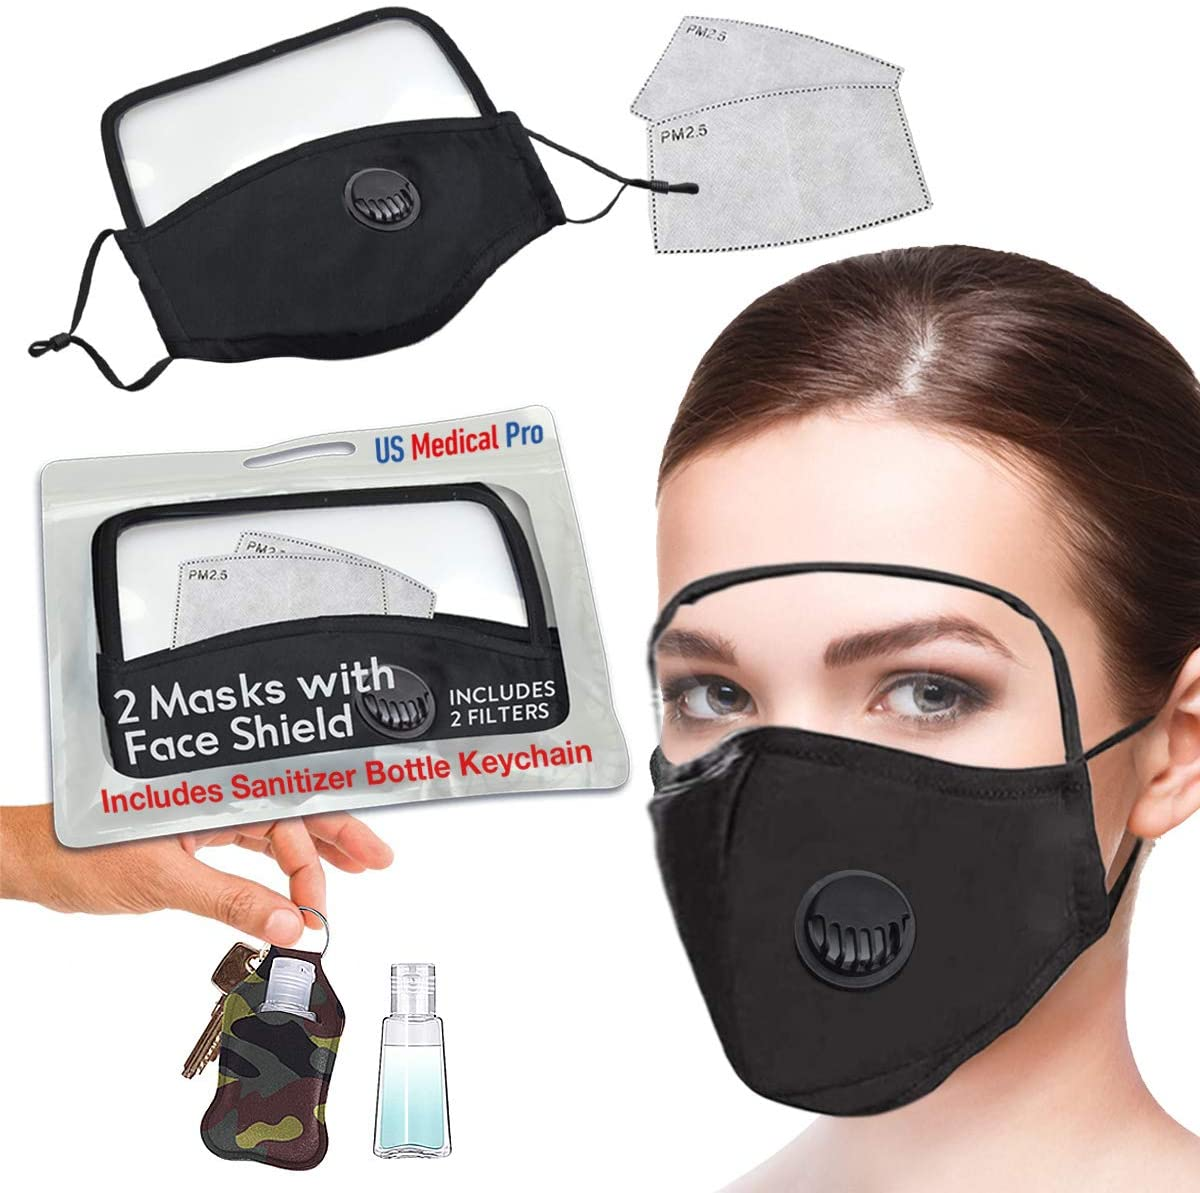 PM 2.5 Reusable Mask with Eye shield and filter